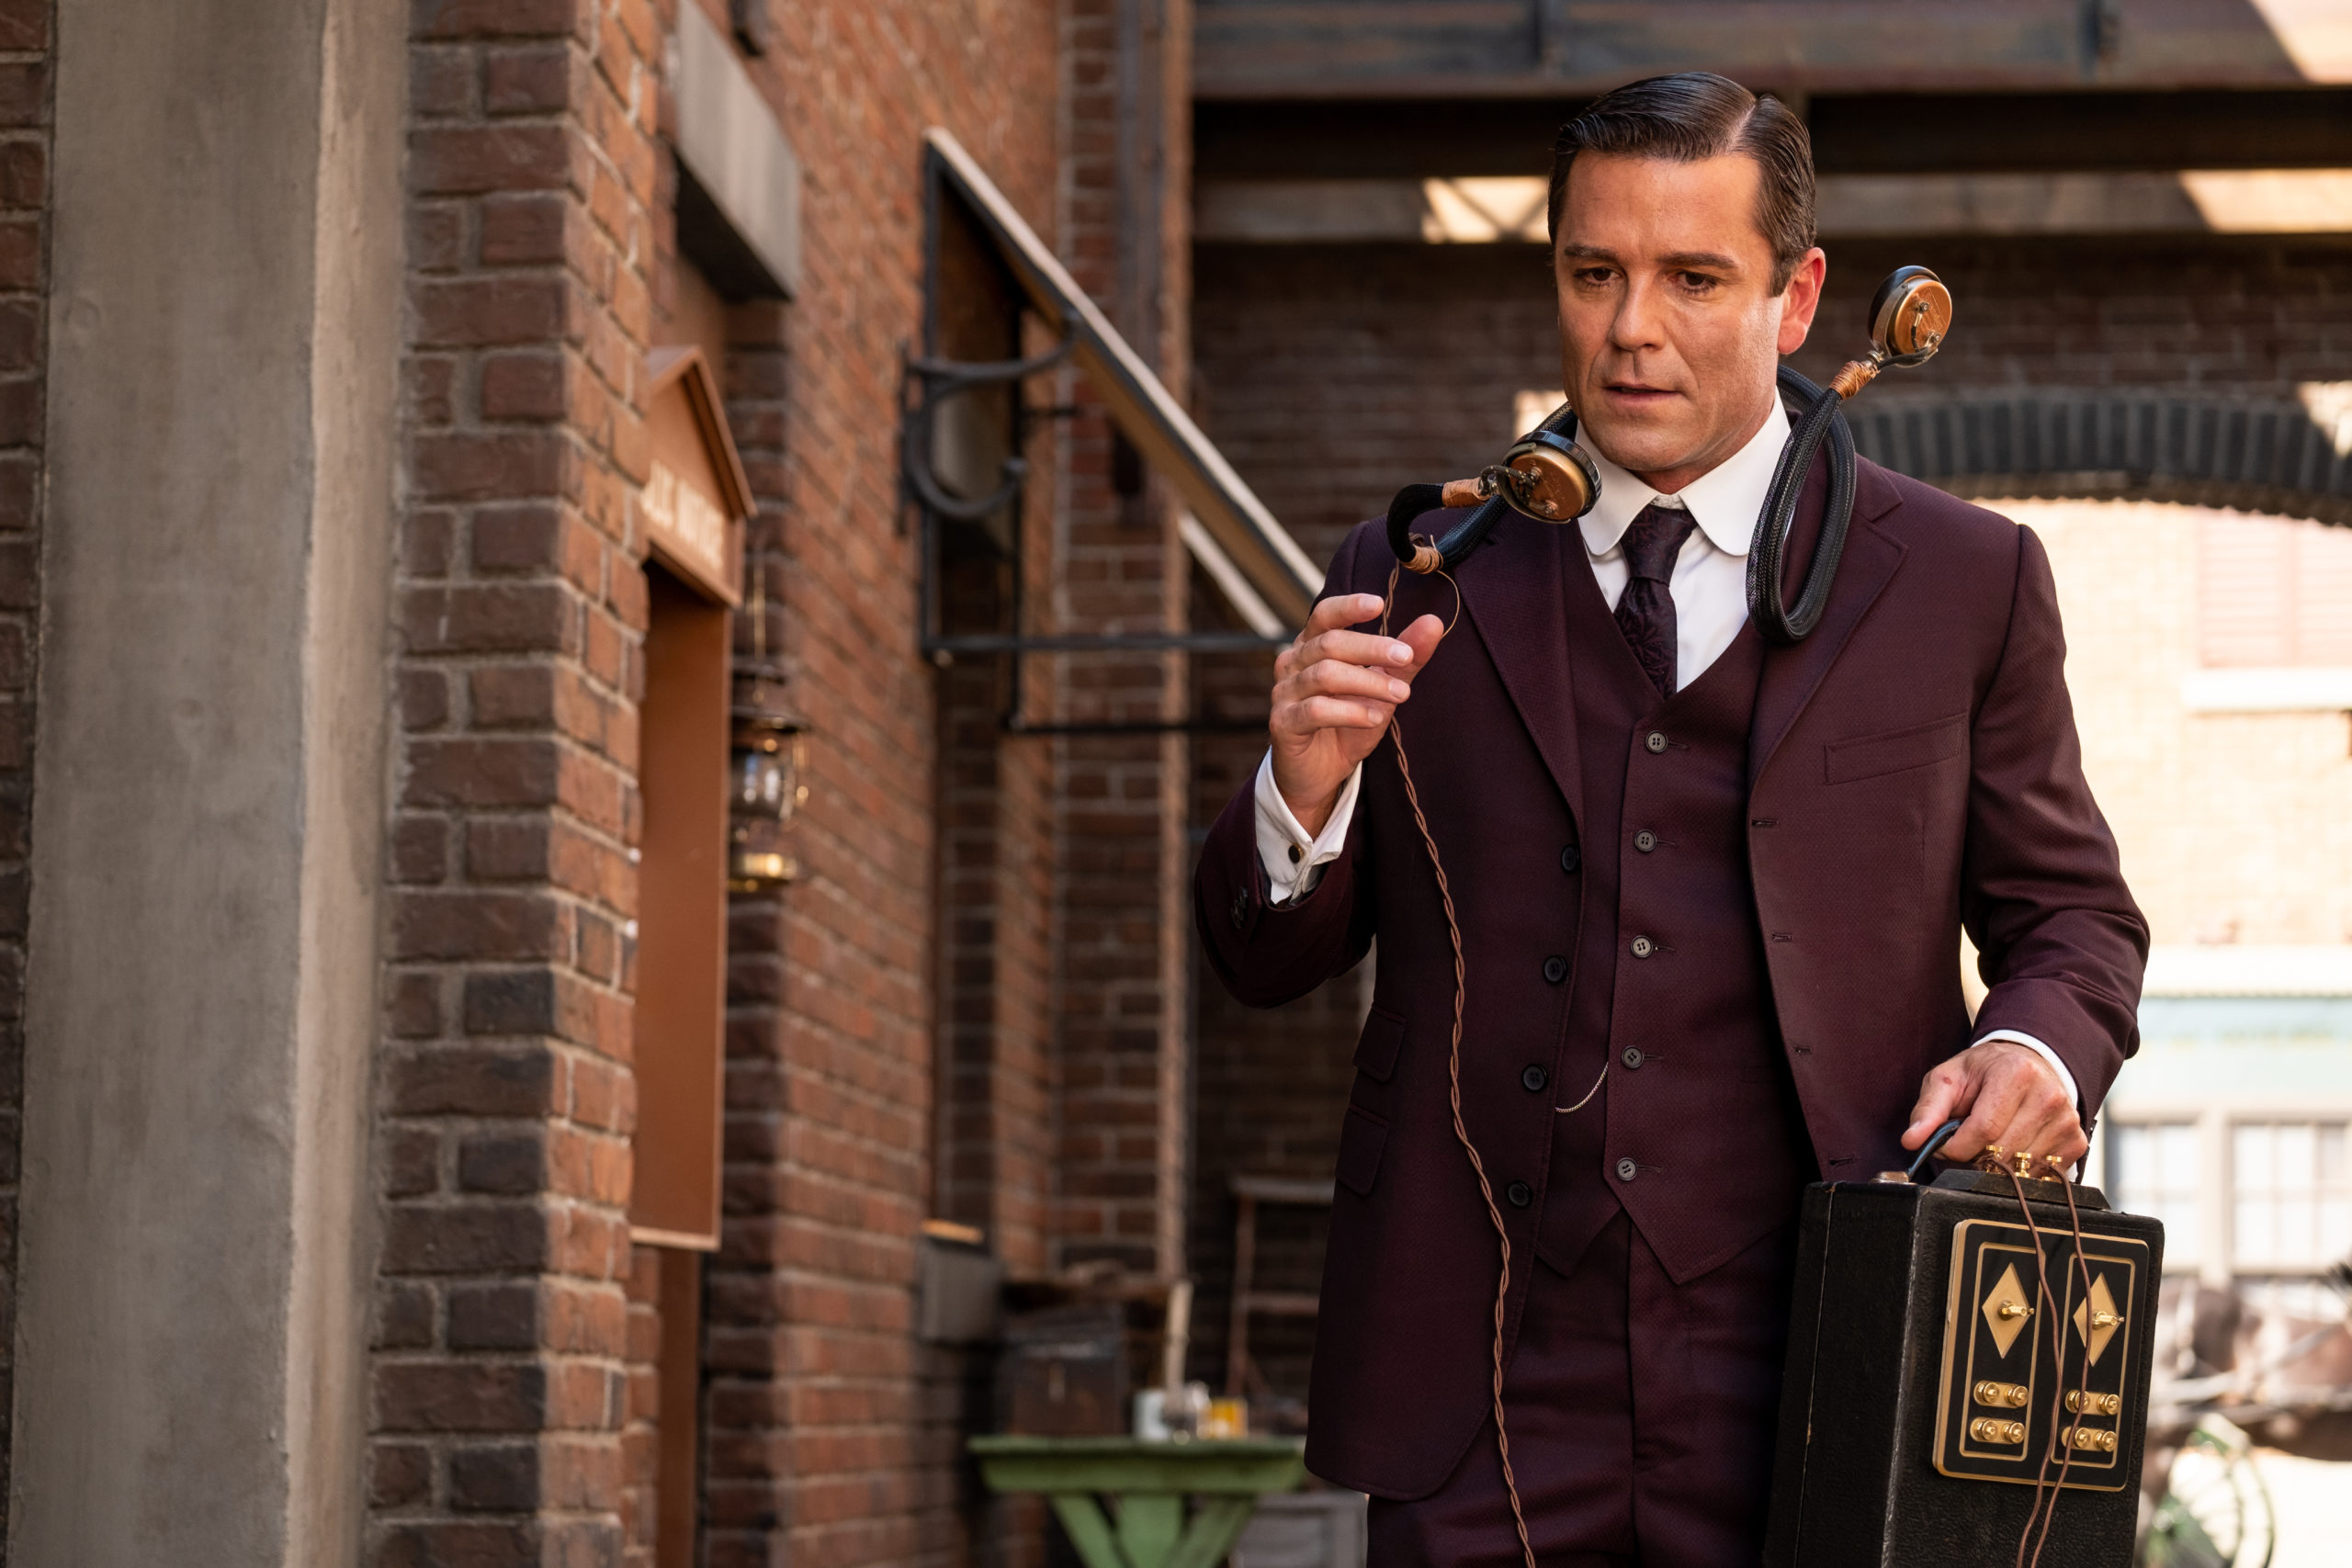 Murdoch Mysteries Christmas Special 2021 Murdoch Mysteries Season 14 Premiere Date Announced By Ovation Canceled Renewed Tv Shows Tv Series Finale